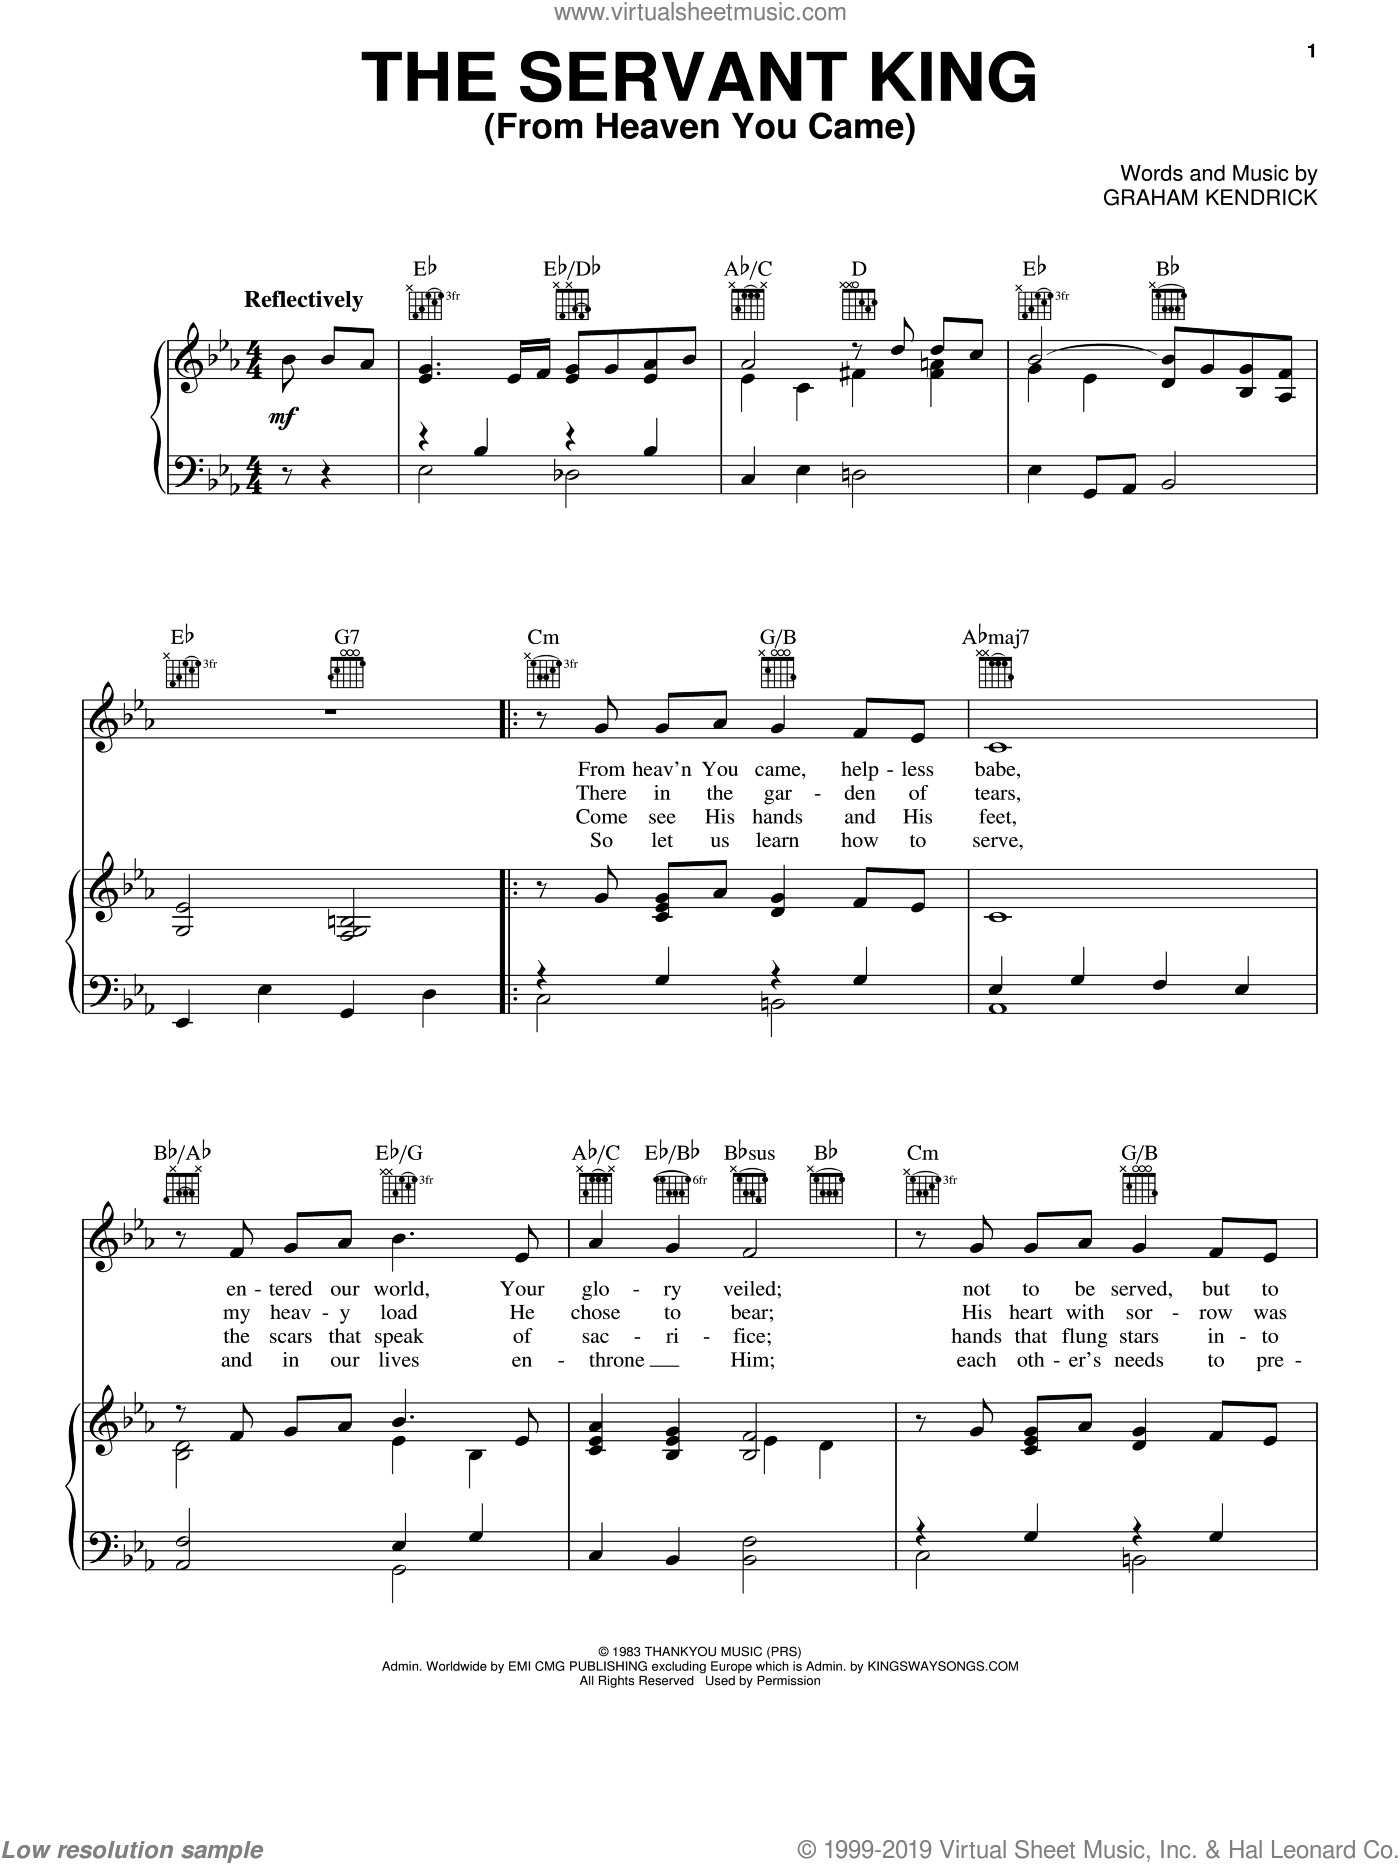 The Servant King From Heaven You Came sheet music for voice, piano or guitar by Graham Kendrick, intermediate skill level